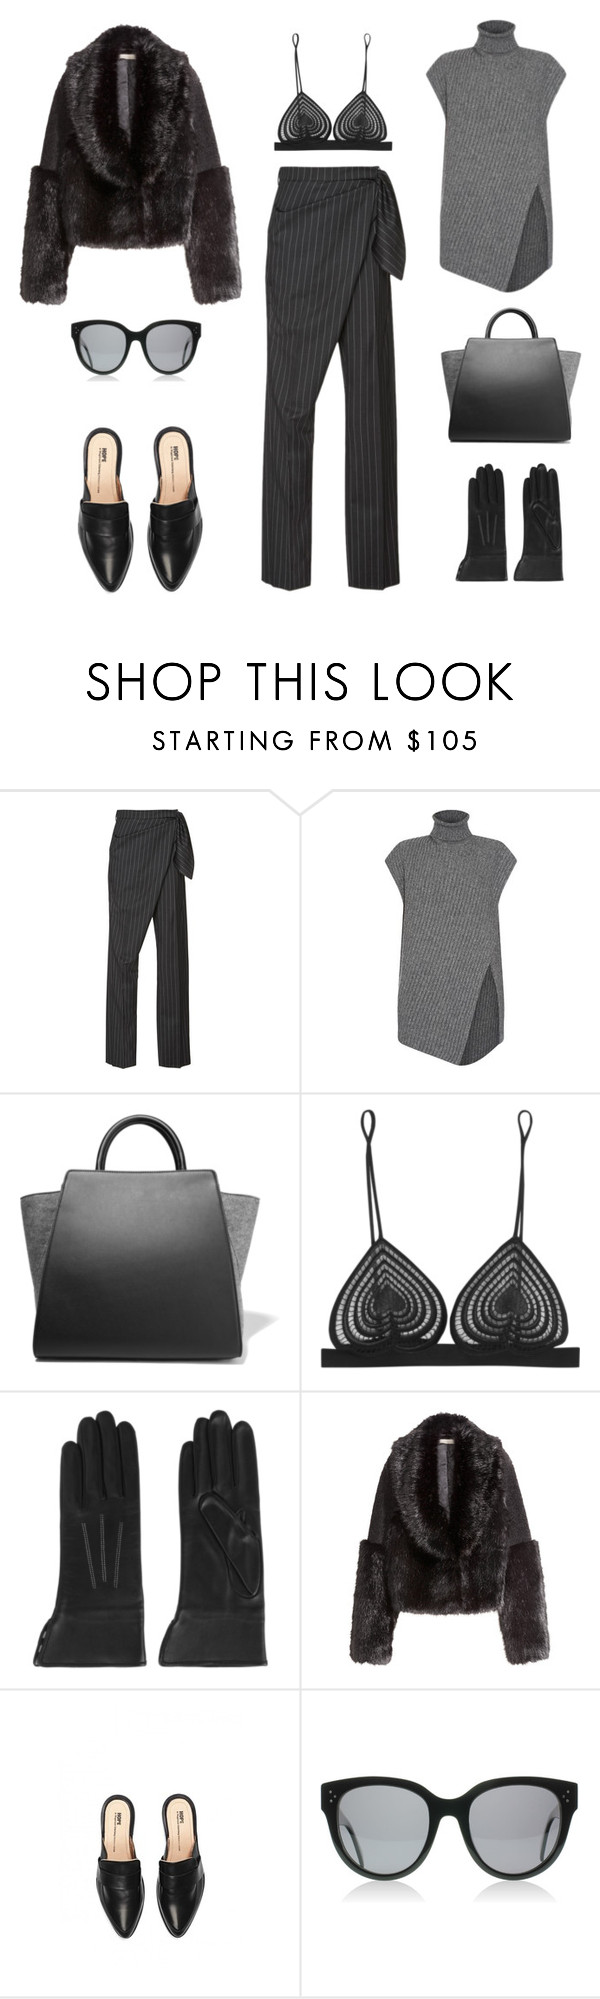 """""""Unbenannt #506"""" by fashionlandscape ❤ liked on Polyvore featuring мода, J.W. Anderson, Sportmax, ZAC Zac Posen, Christopher Kane и AGNELLE"""